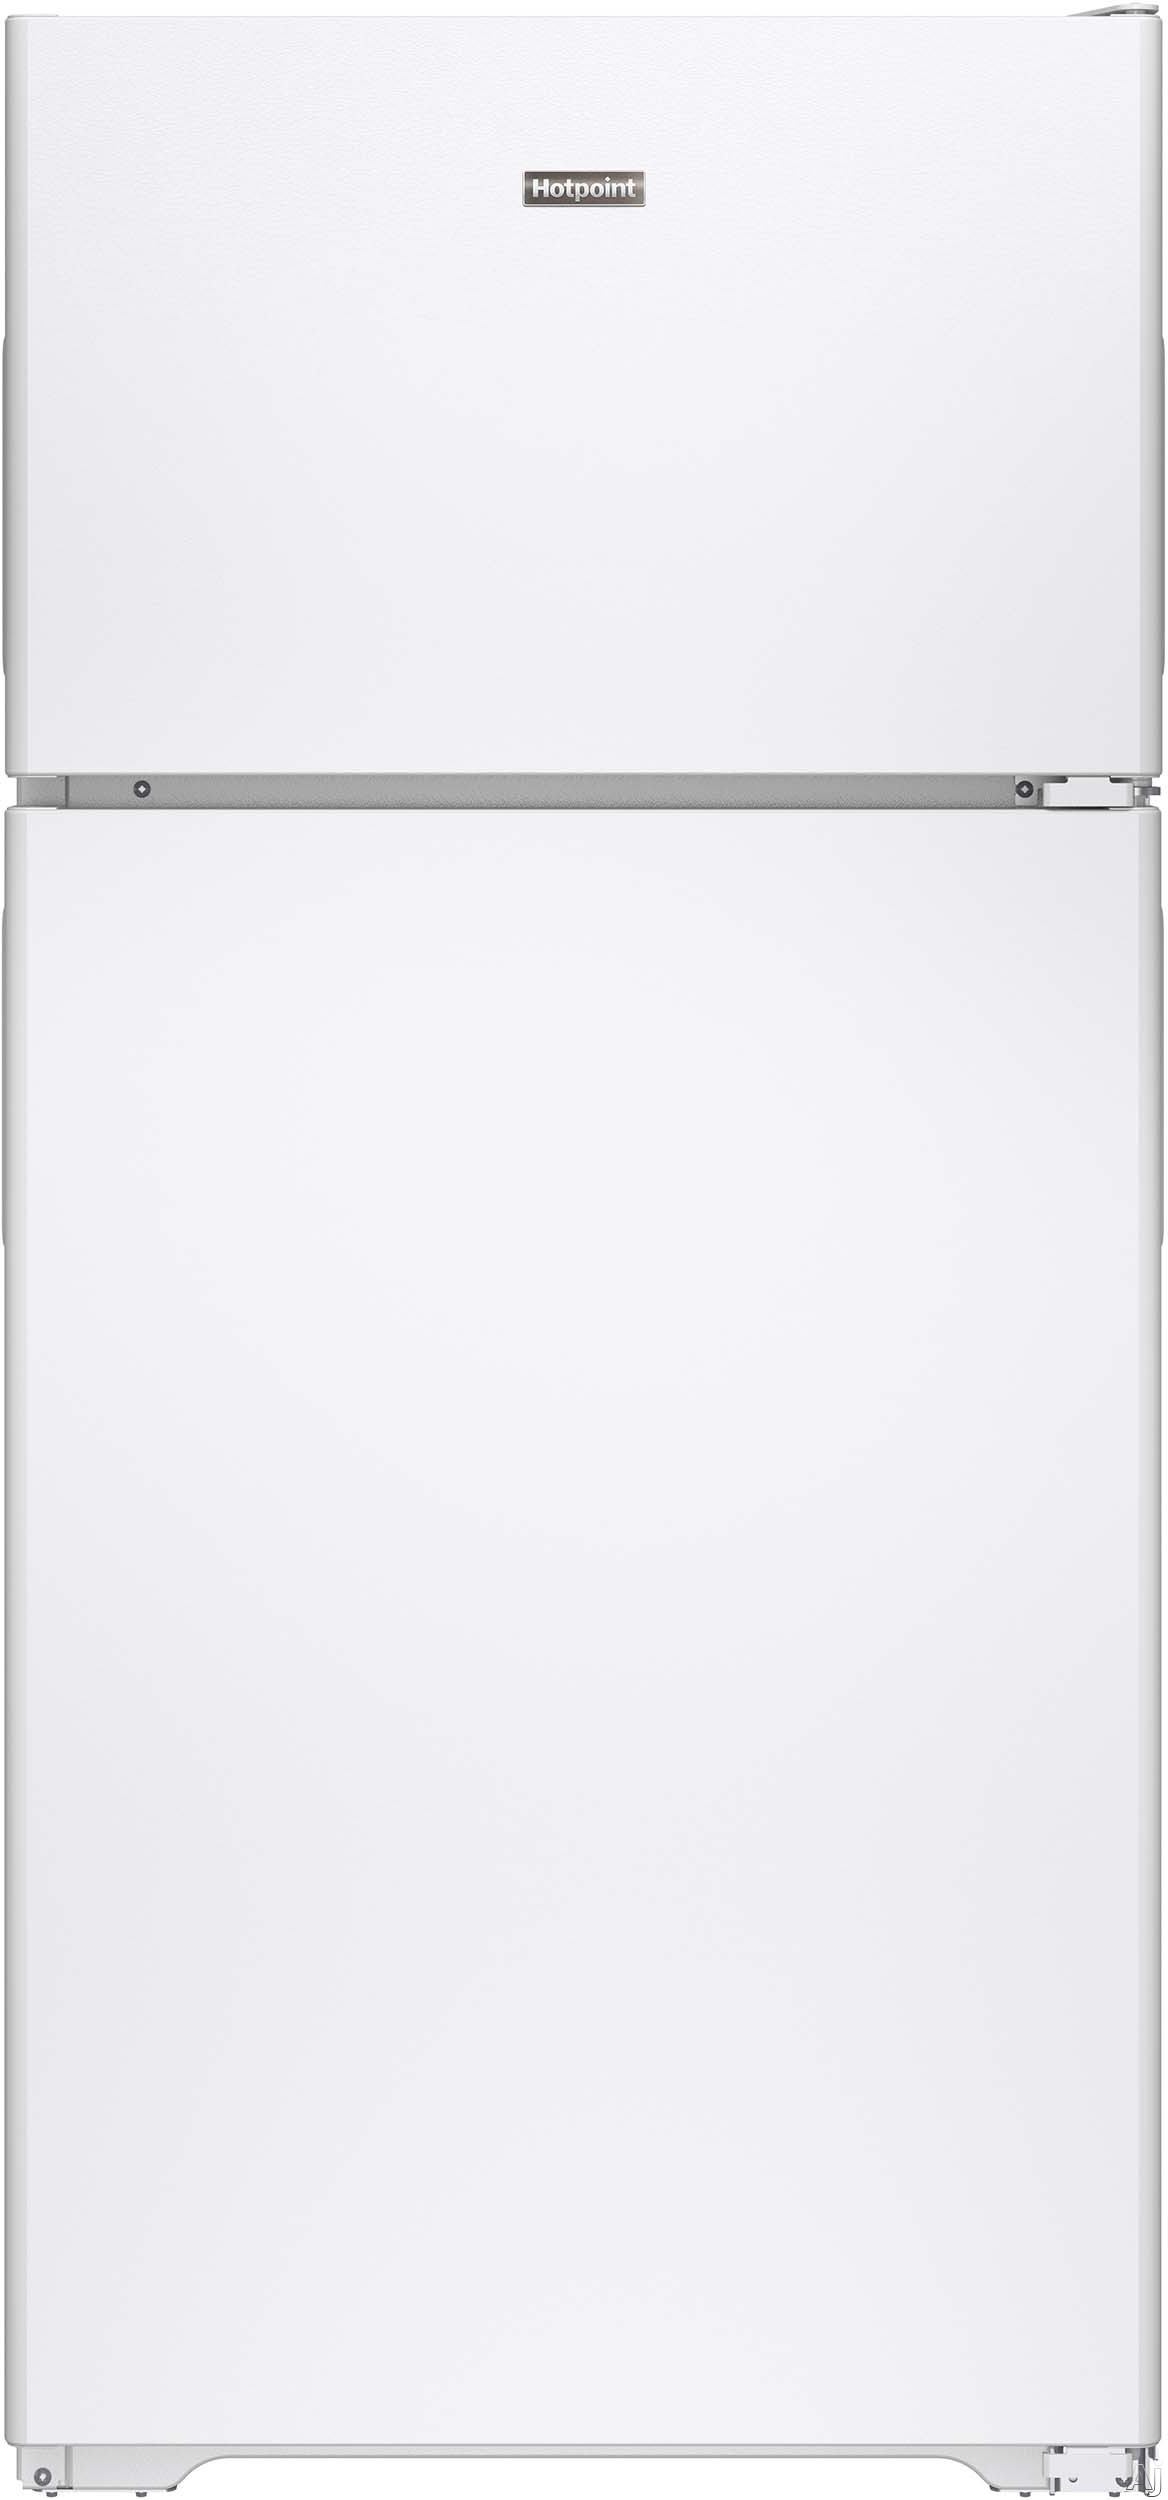 Hotpoint HPE15BTHWW 146 cu ft Top Freezer Refrigerator with 2 Wire Shelves 2 Storage Drawers 2 Gallon Door Bins Dairy Compartment Wire Freezer Shelf 2 Freezer Door Bins and Optional Ice Maker